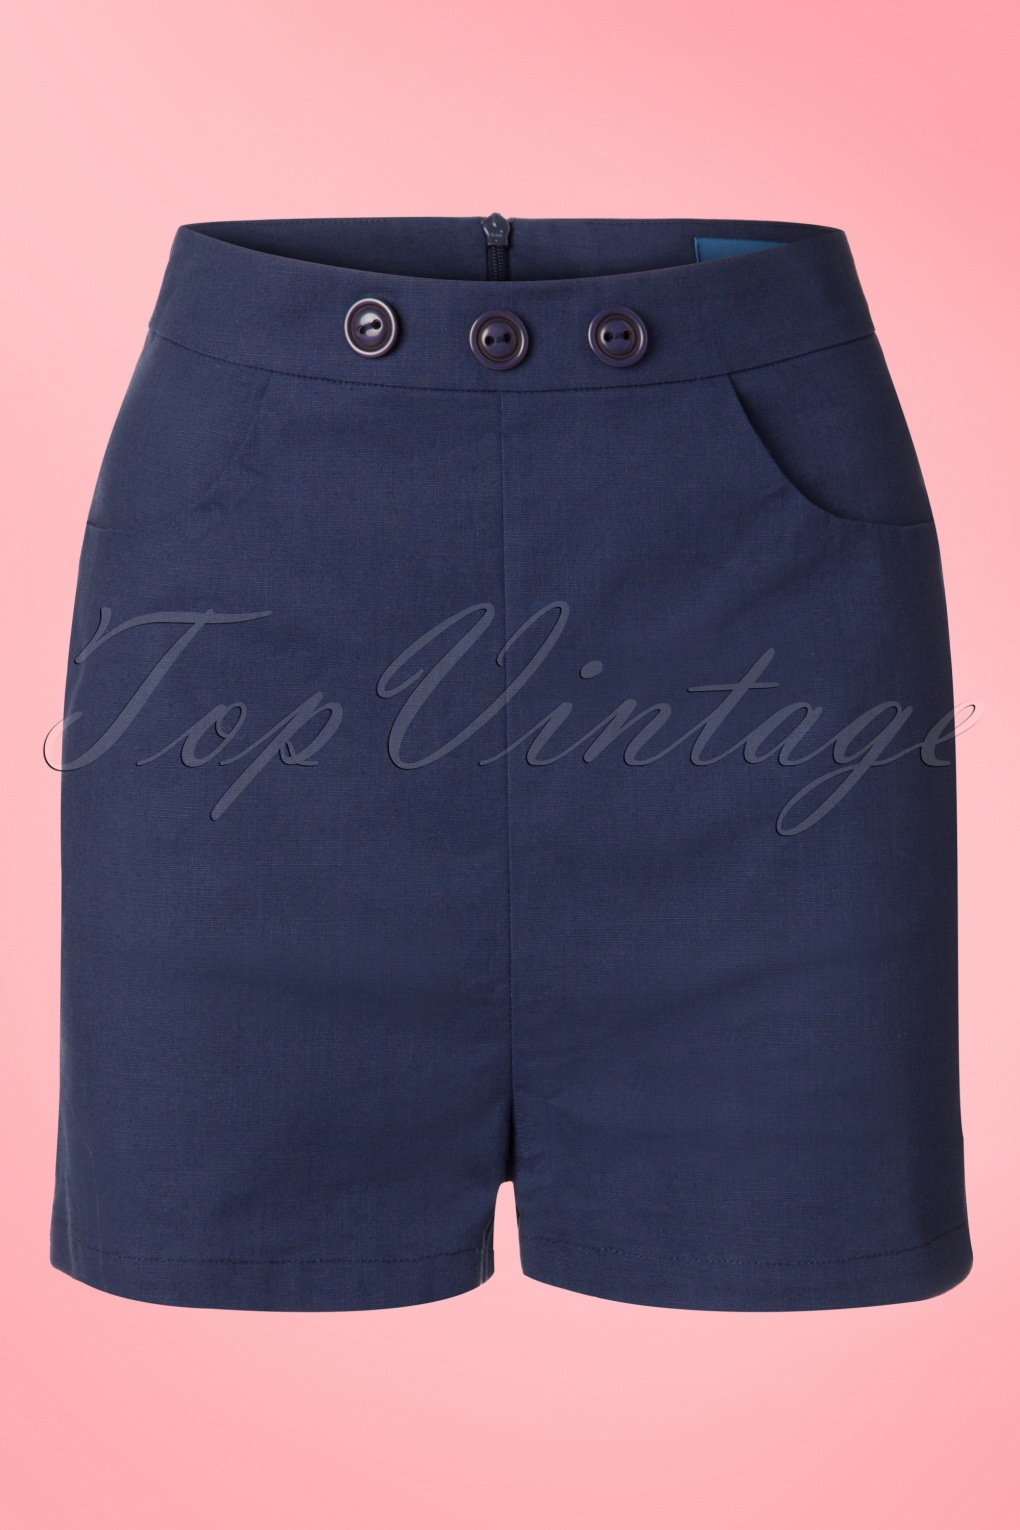 High Waisted Shorts- 1950s Vintage, Pinup, Rockabilly 50s Talis Shorts in Navy £30.75 AT vintagedancer.com